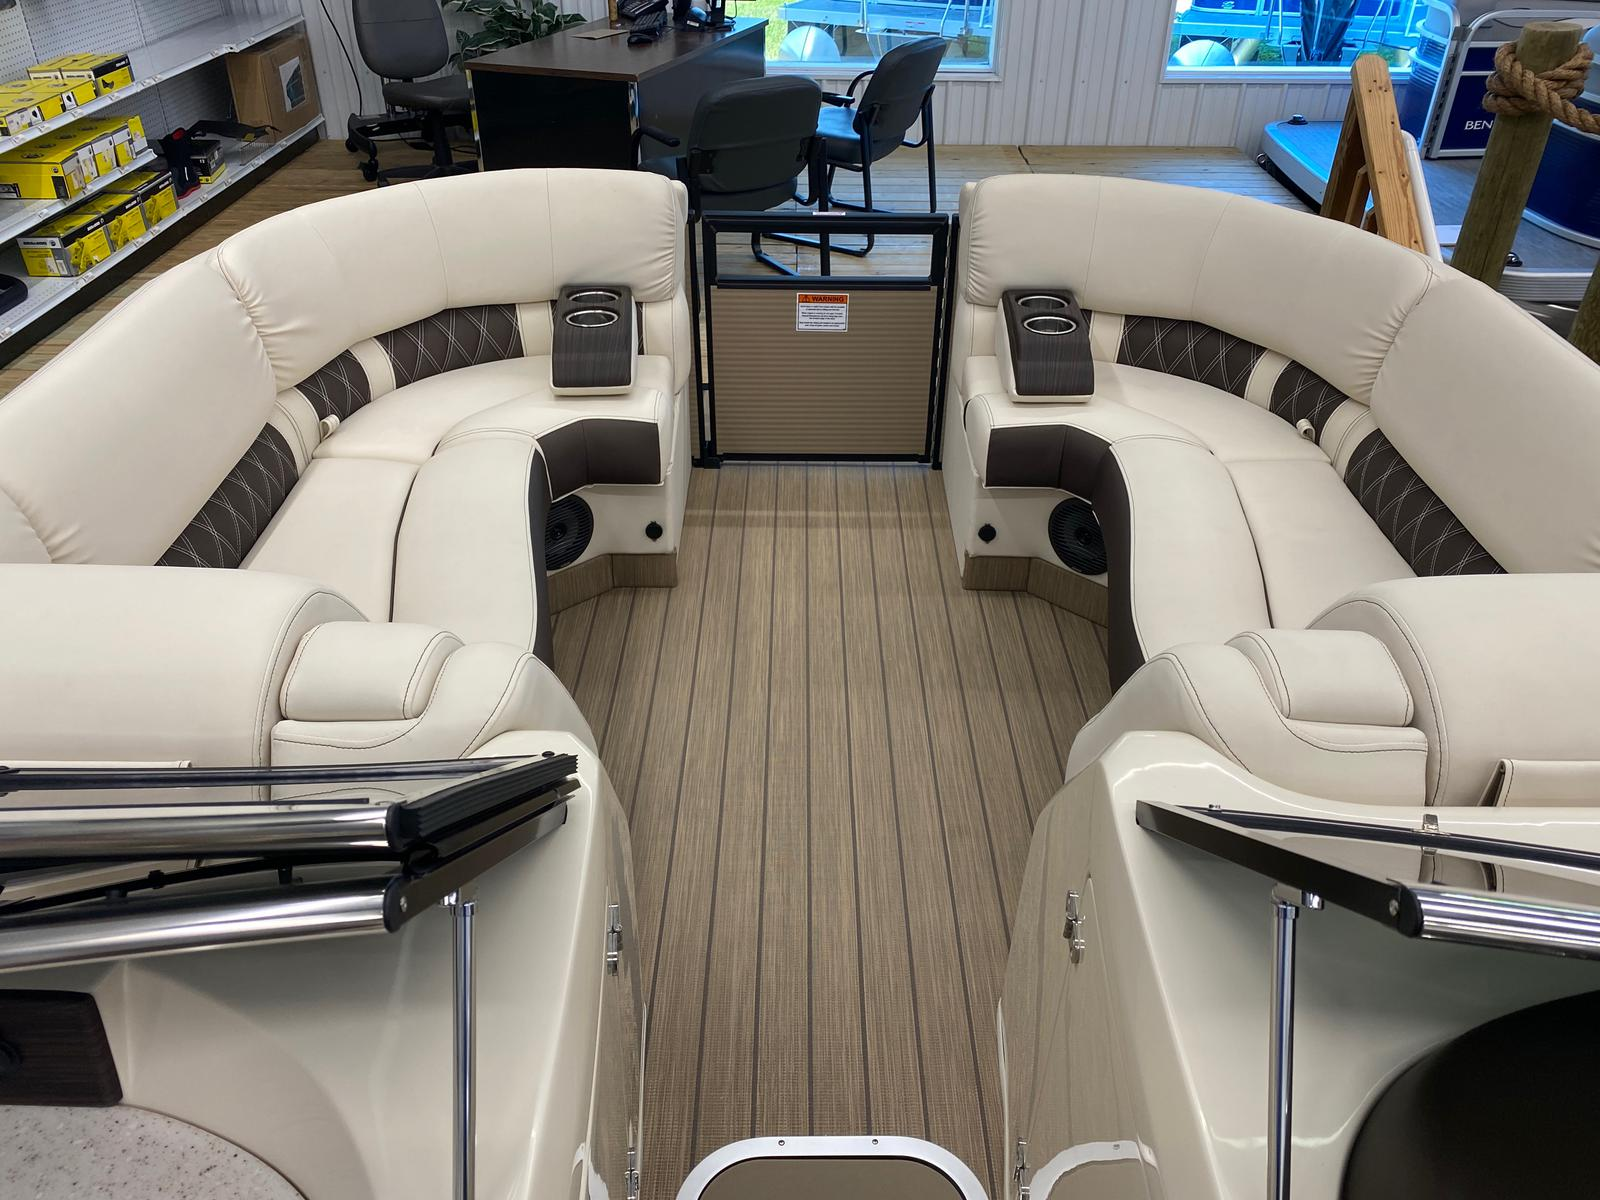 2021 Bennington boat for sale, model of the boat is 23 RSBWA WSHLD DLX Fold Open SP Arch Tri-Toon ESP Package & Image # 10 of 25